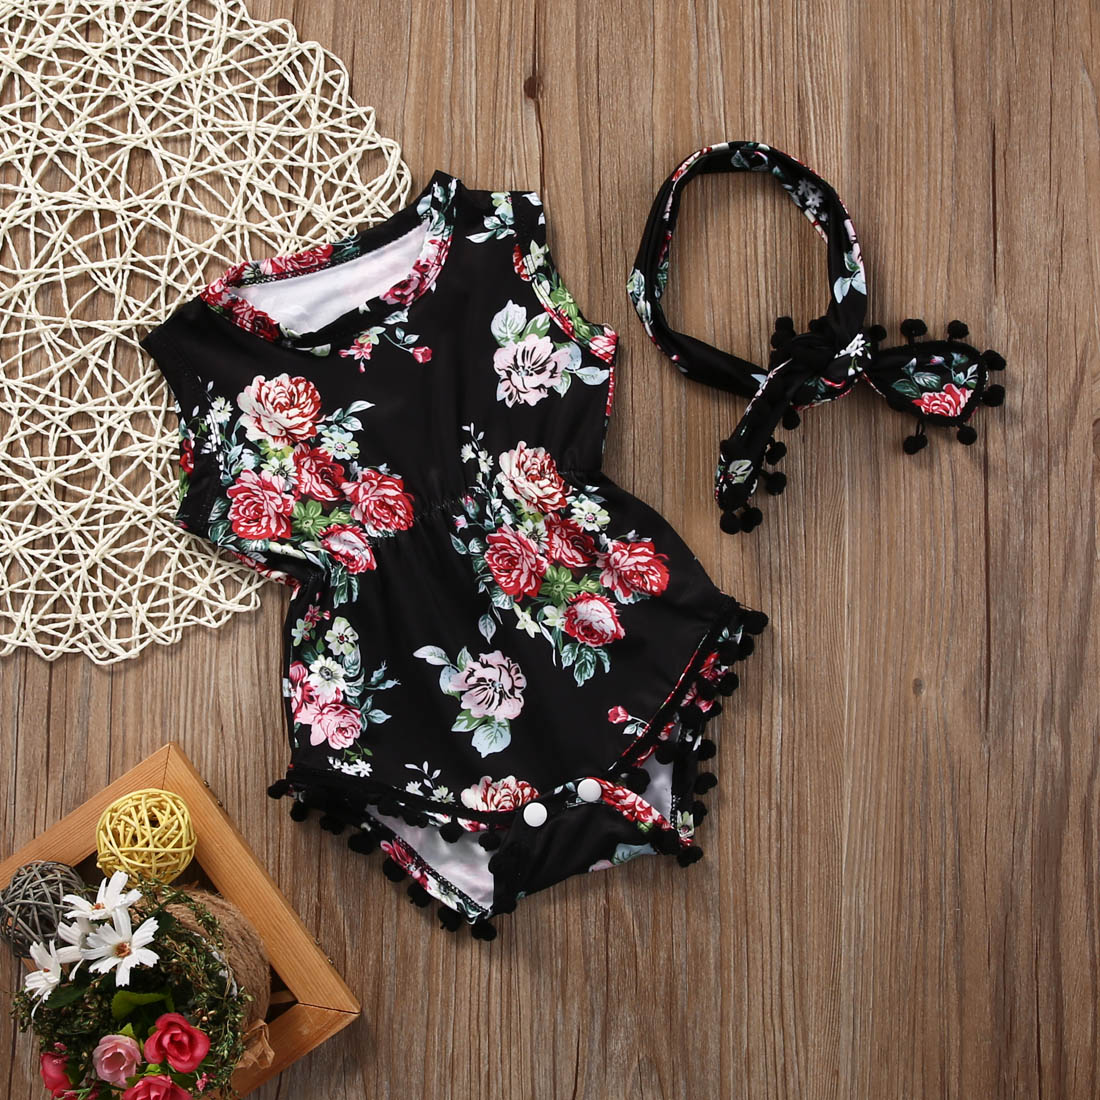 2018 Summer Fashion Baby Girls Floral Romper Jumper Jumpsuit Headband Outfits Clothes Sunsuit